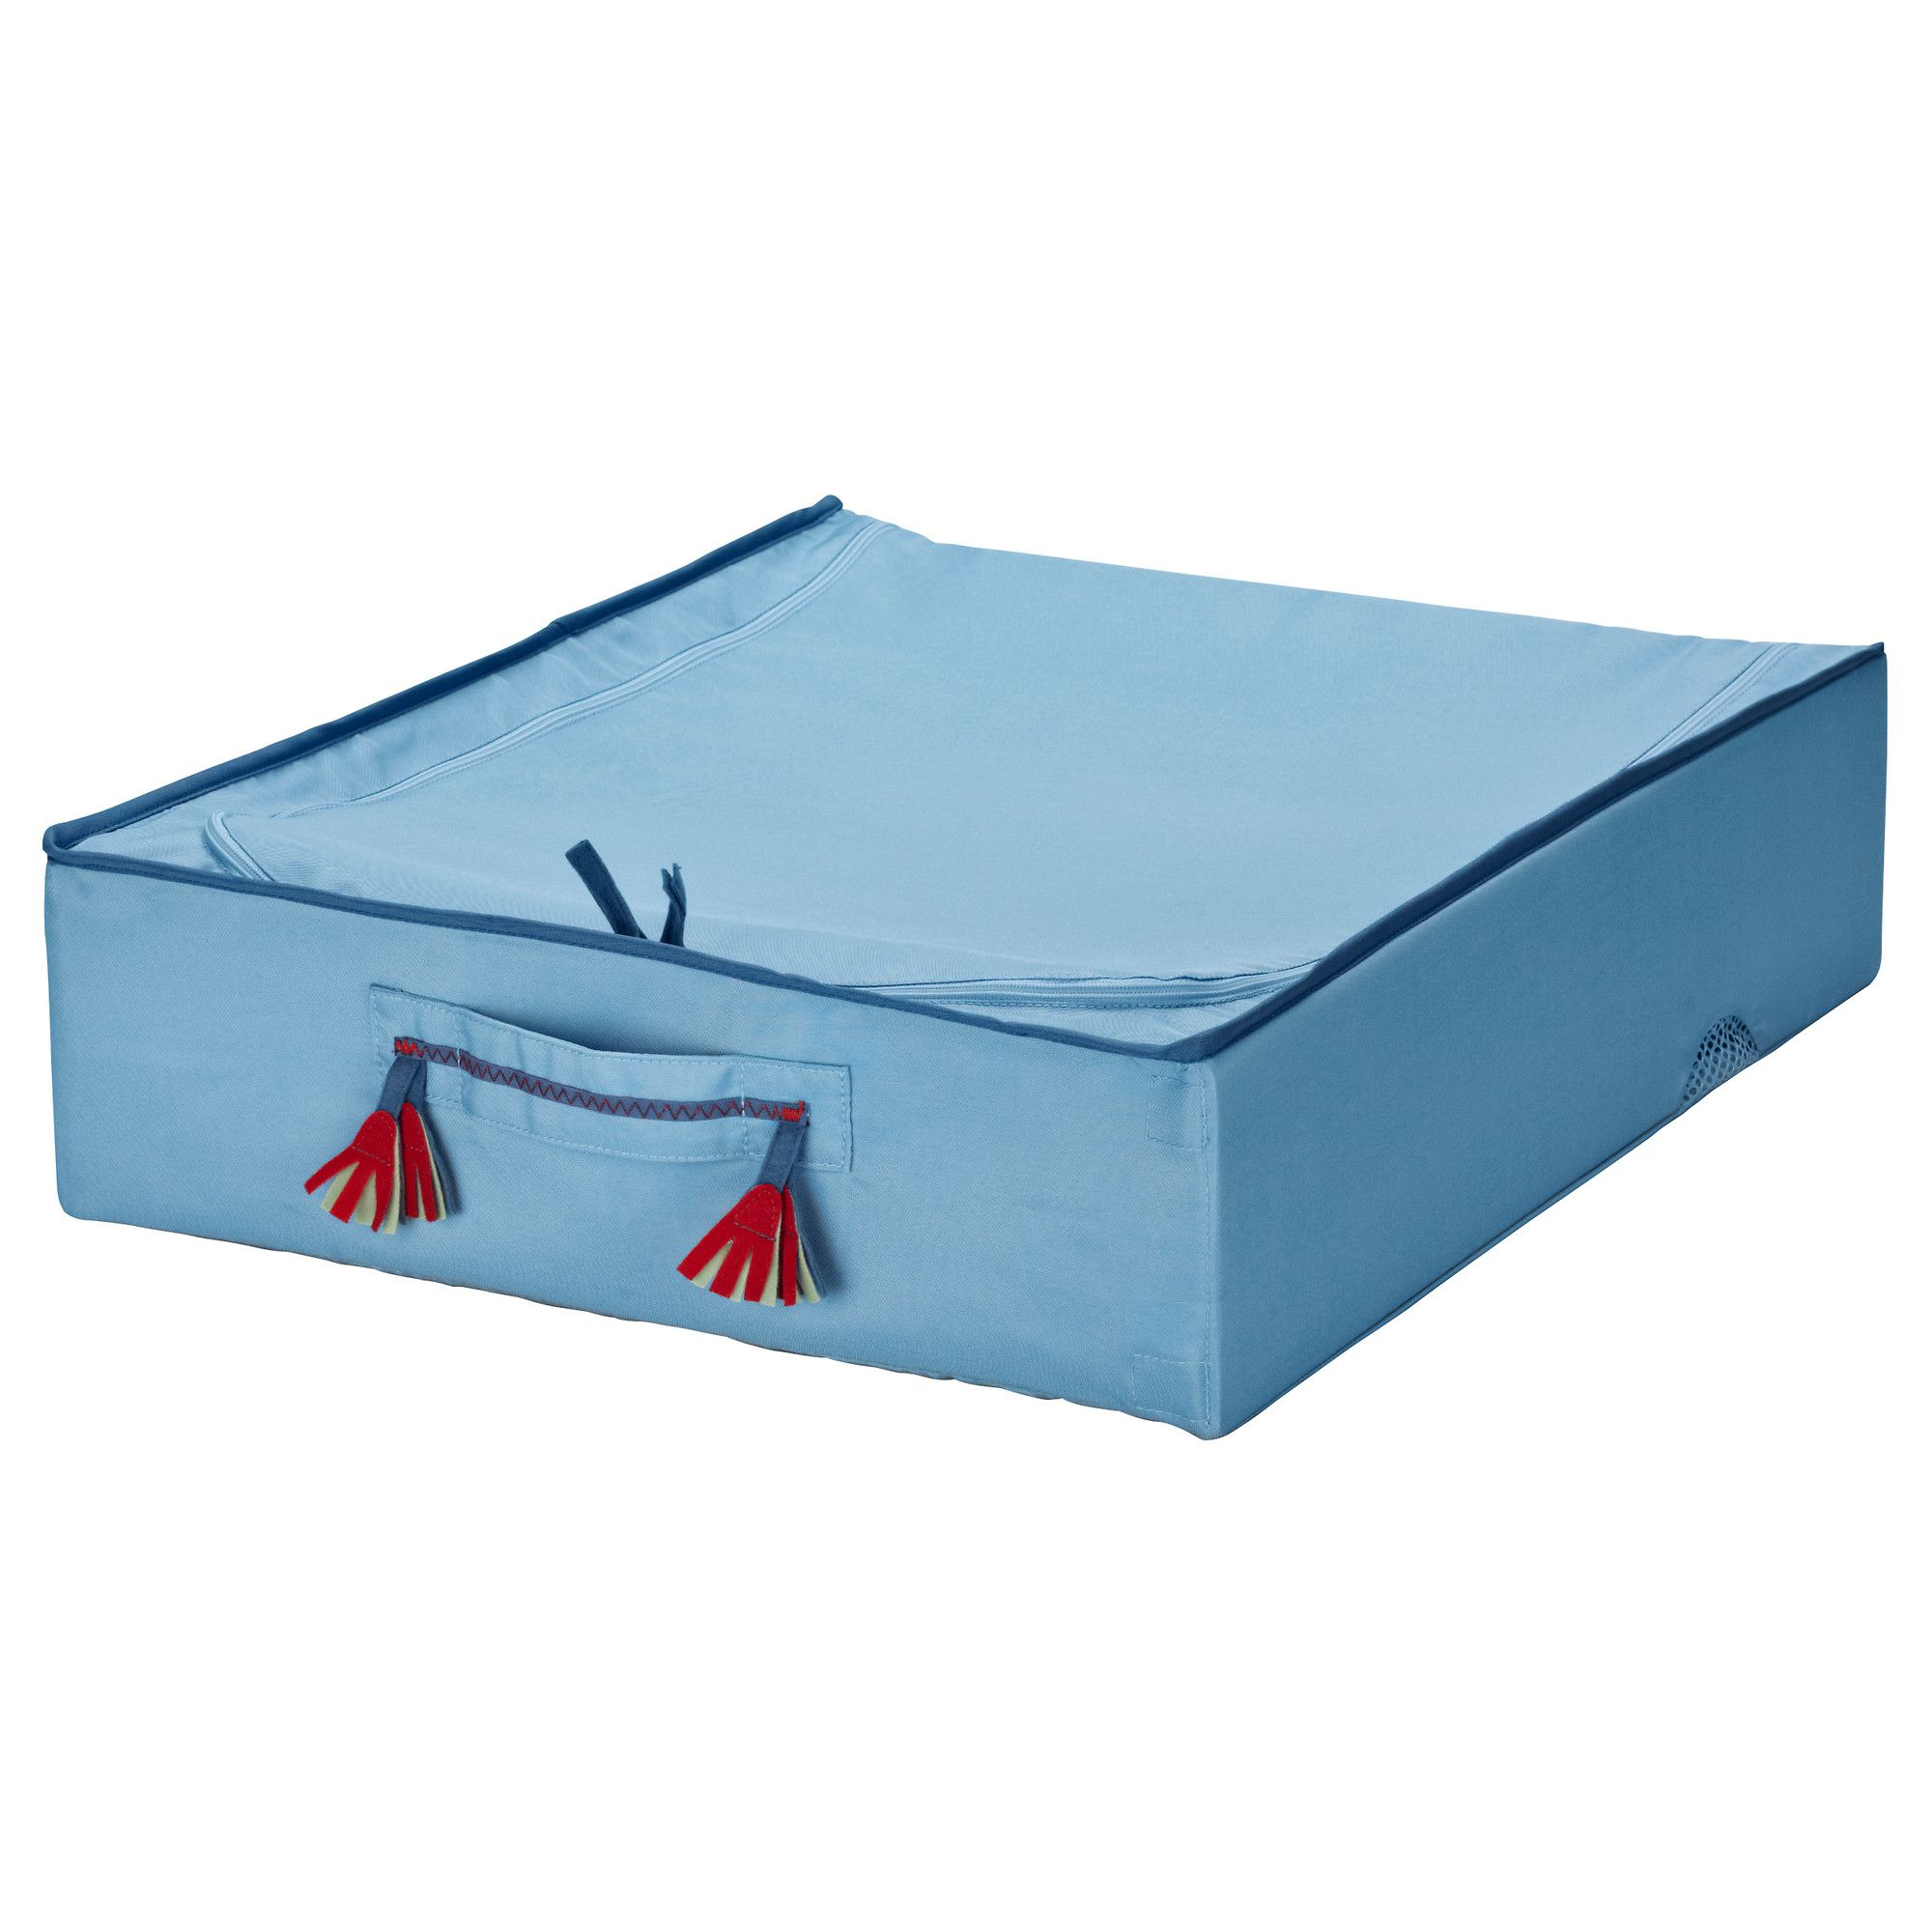 IKEA   PYSSLINGAR, Underbed Storage Box, , Practical Storage For Toys,  Extra Blankets Etc.Can Be Folded To Save Space When Not In Use.